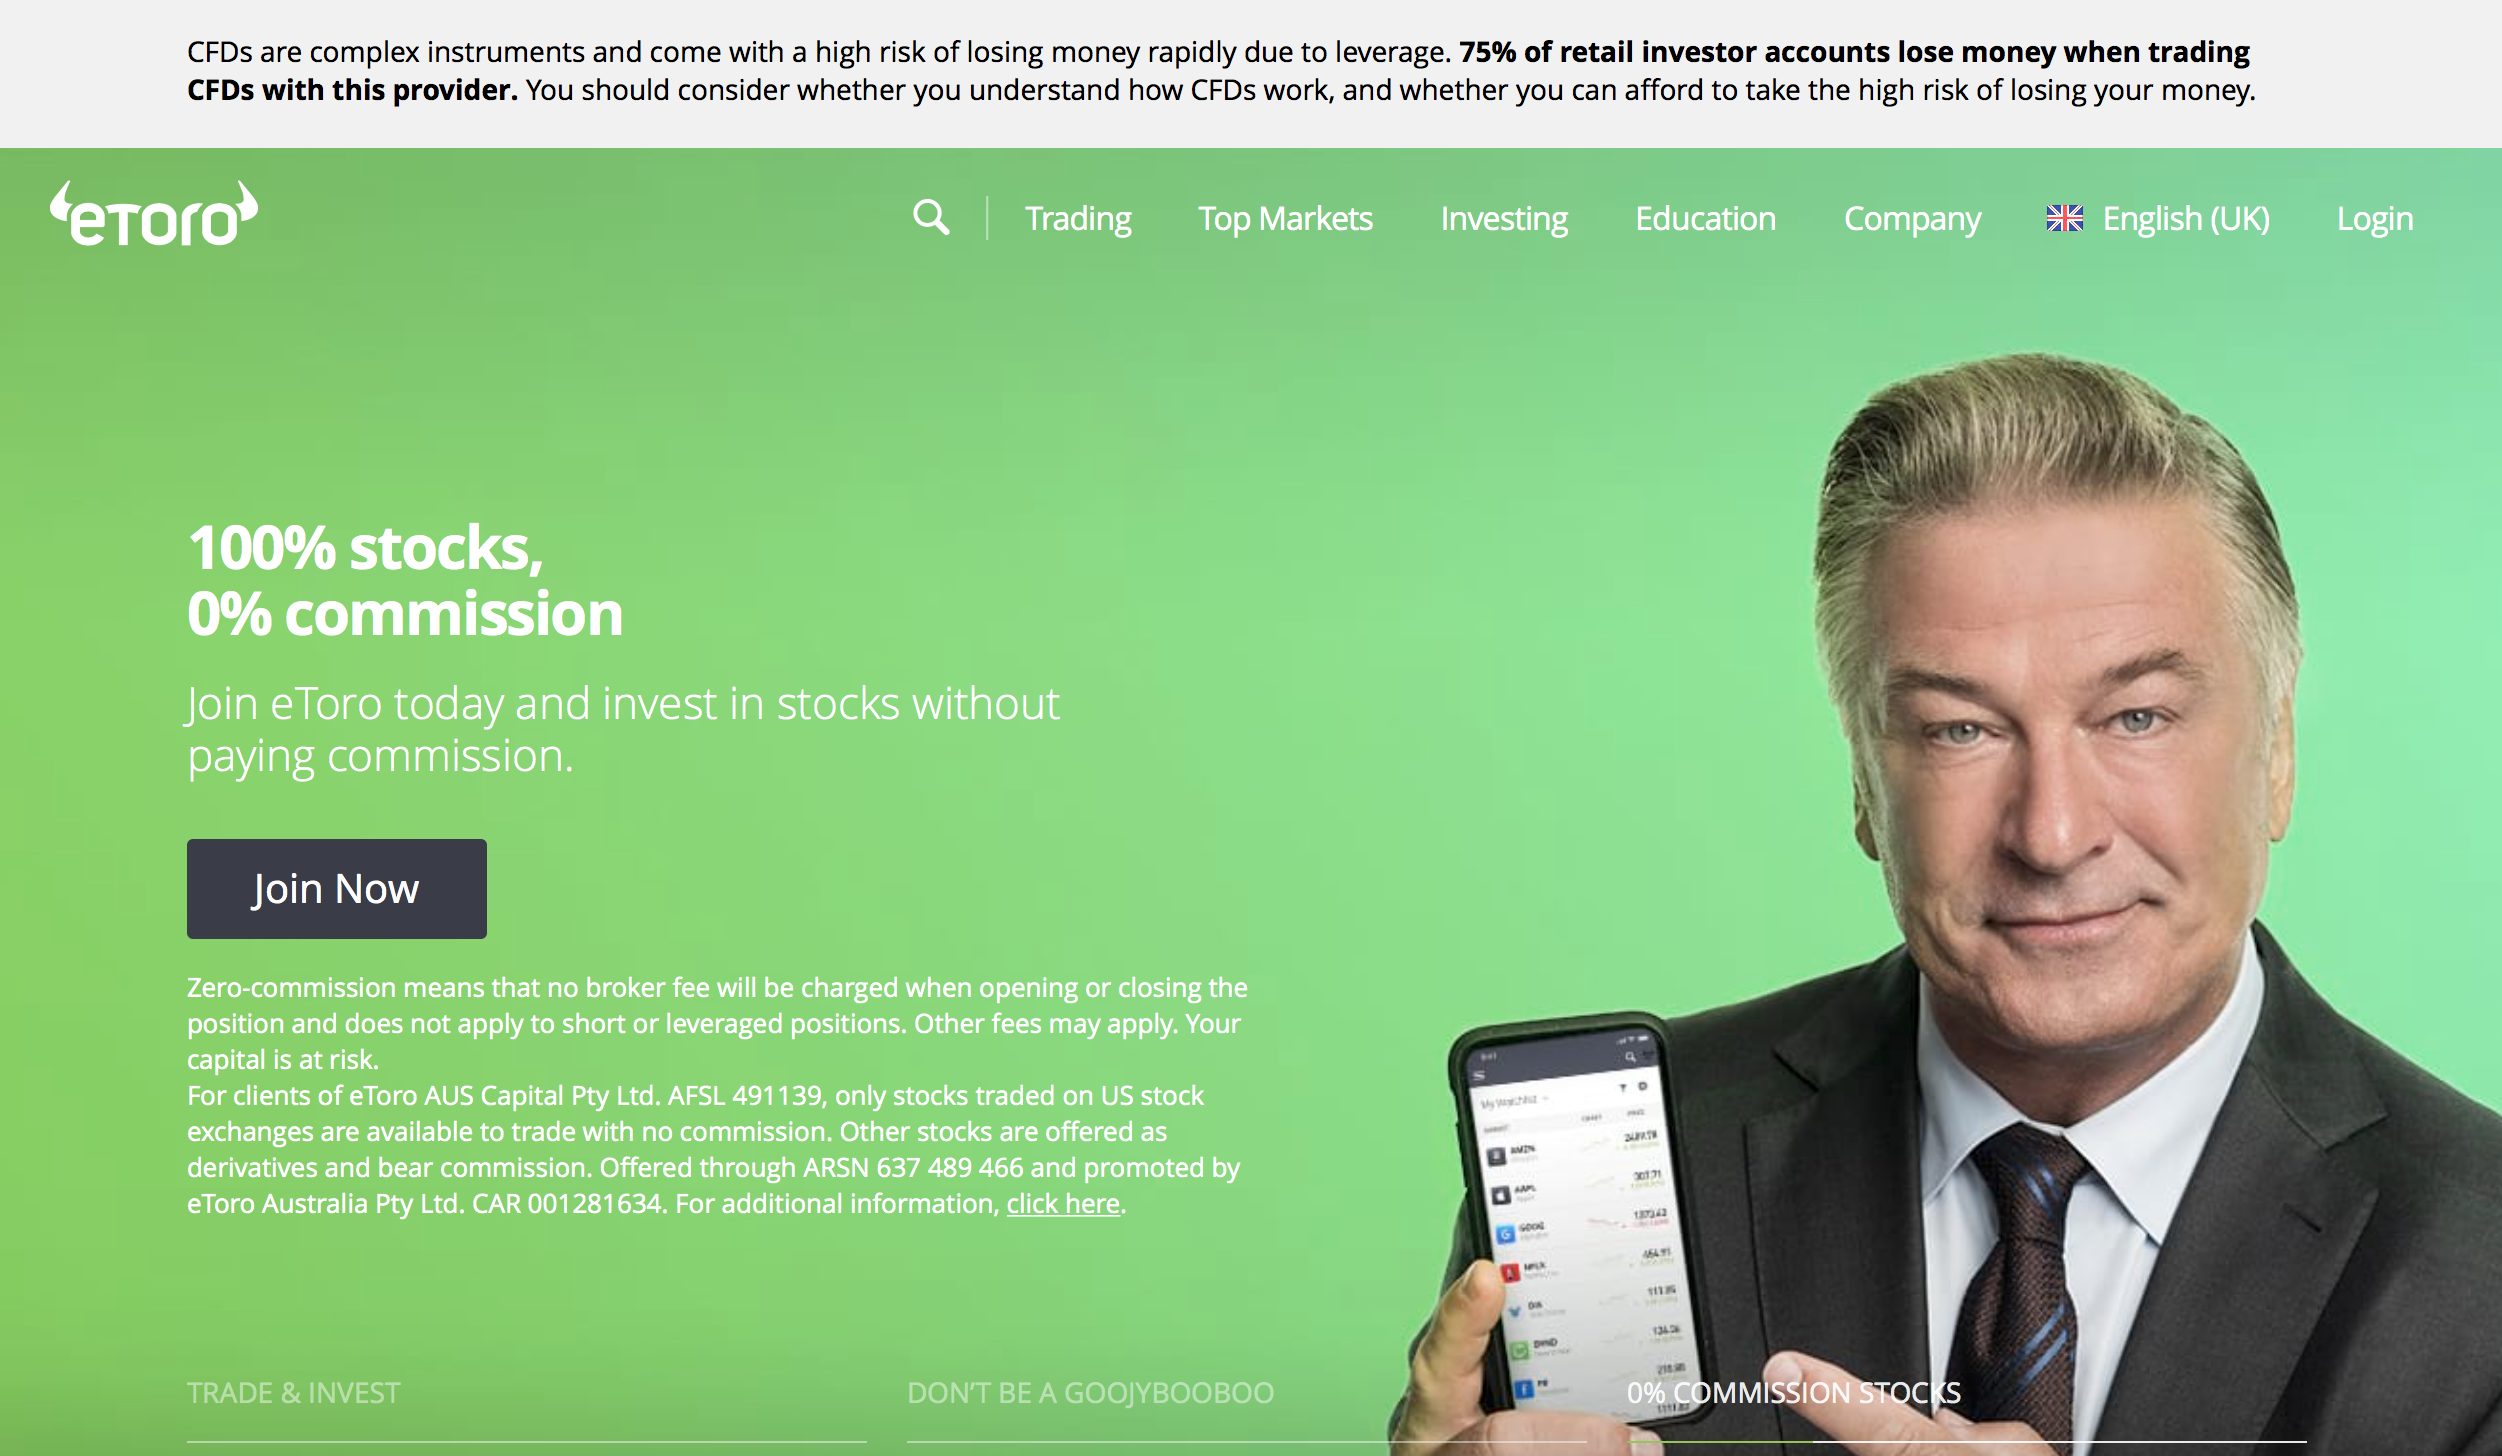 etoro avis | page– screen capture from etoro homepage website, https://www.etoro.com/en-gb/Etoro , Sept 25, 2020 mikov & attorneys | financial fraud lawyer